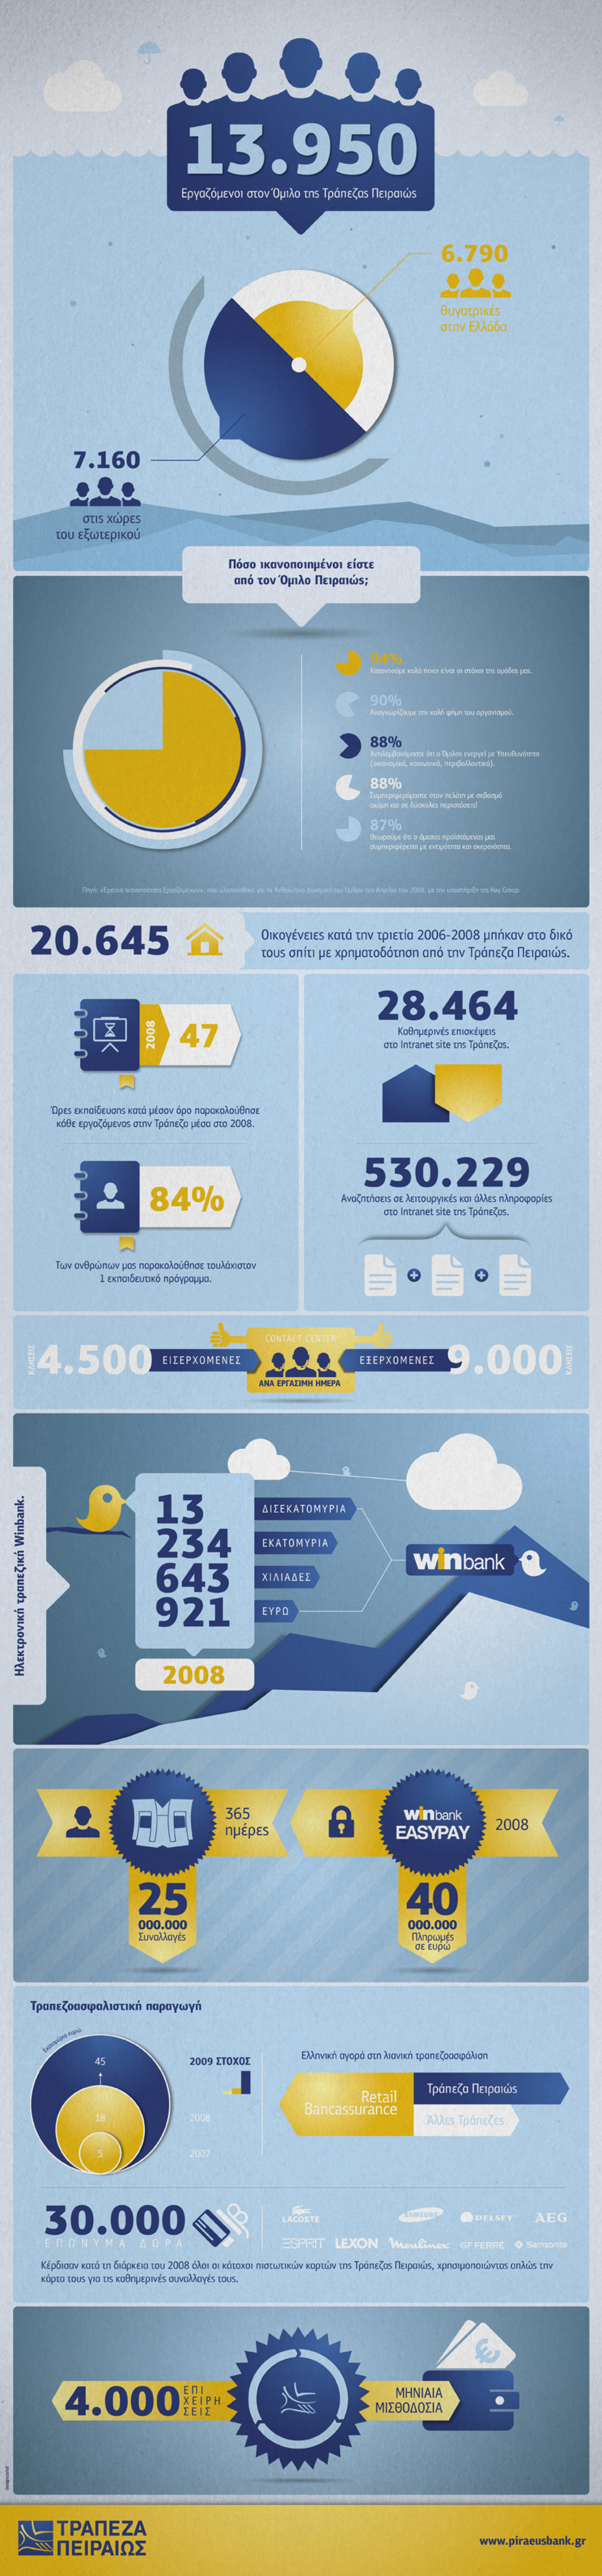 Piraeus Bank facts & figures Infographic